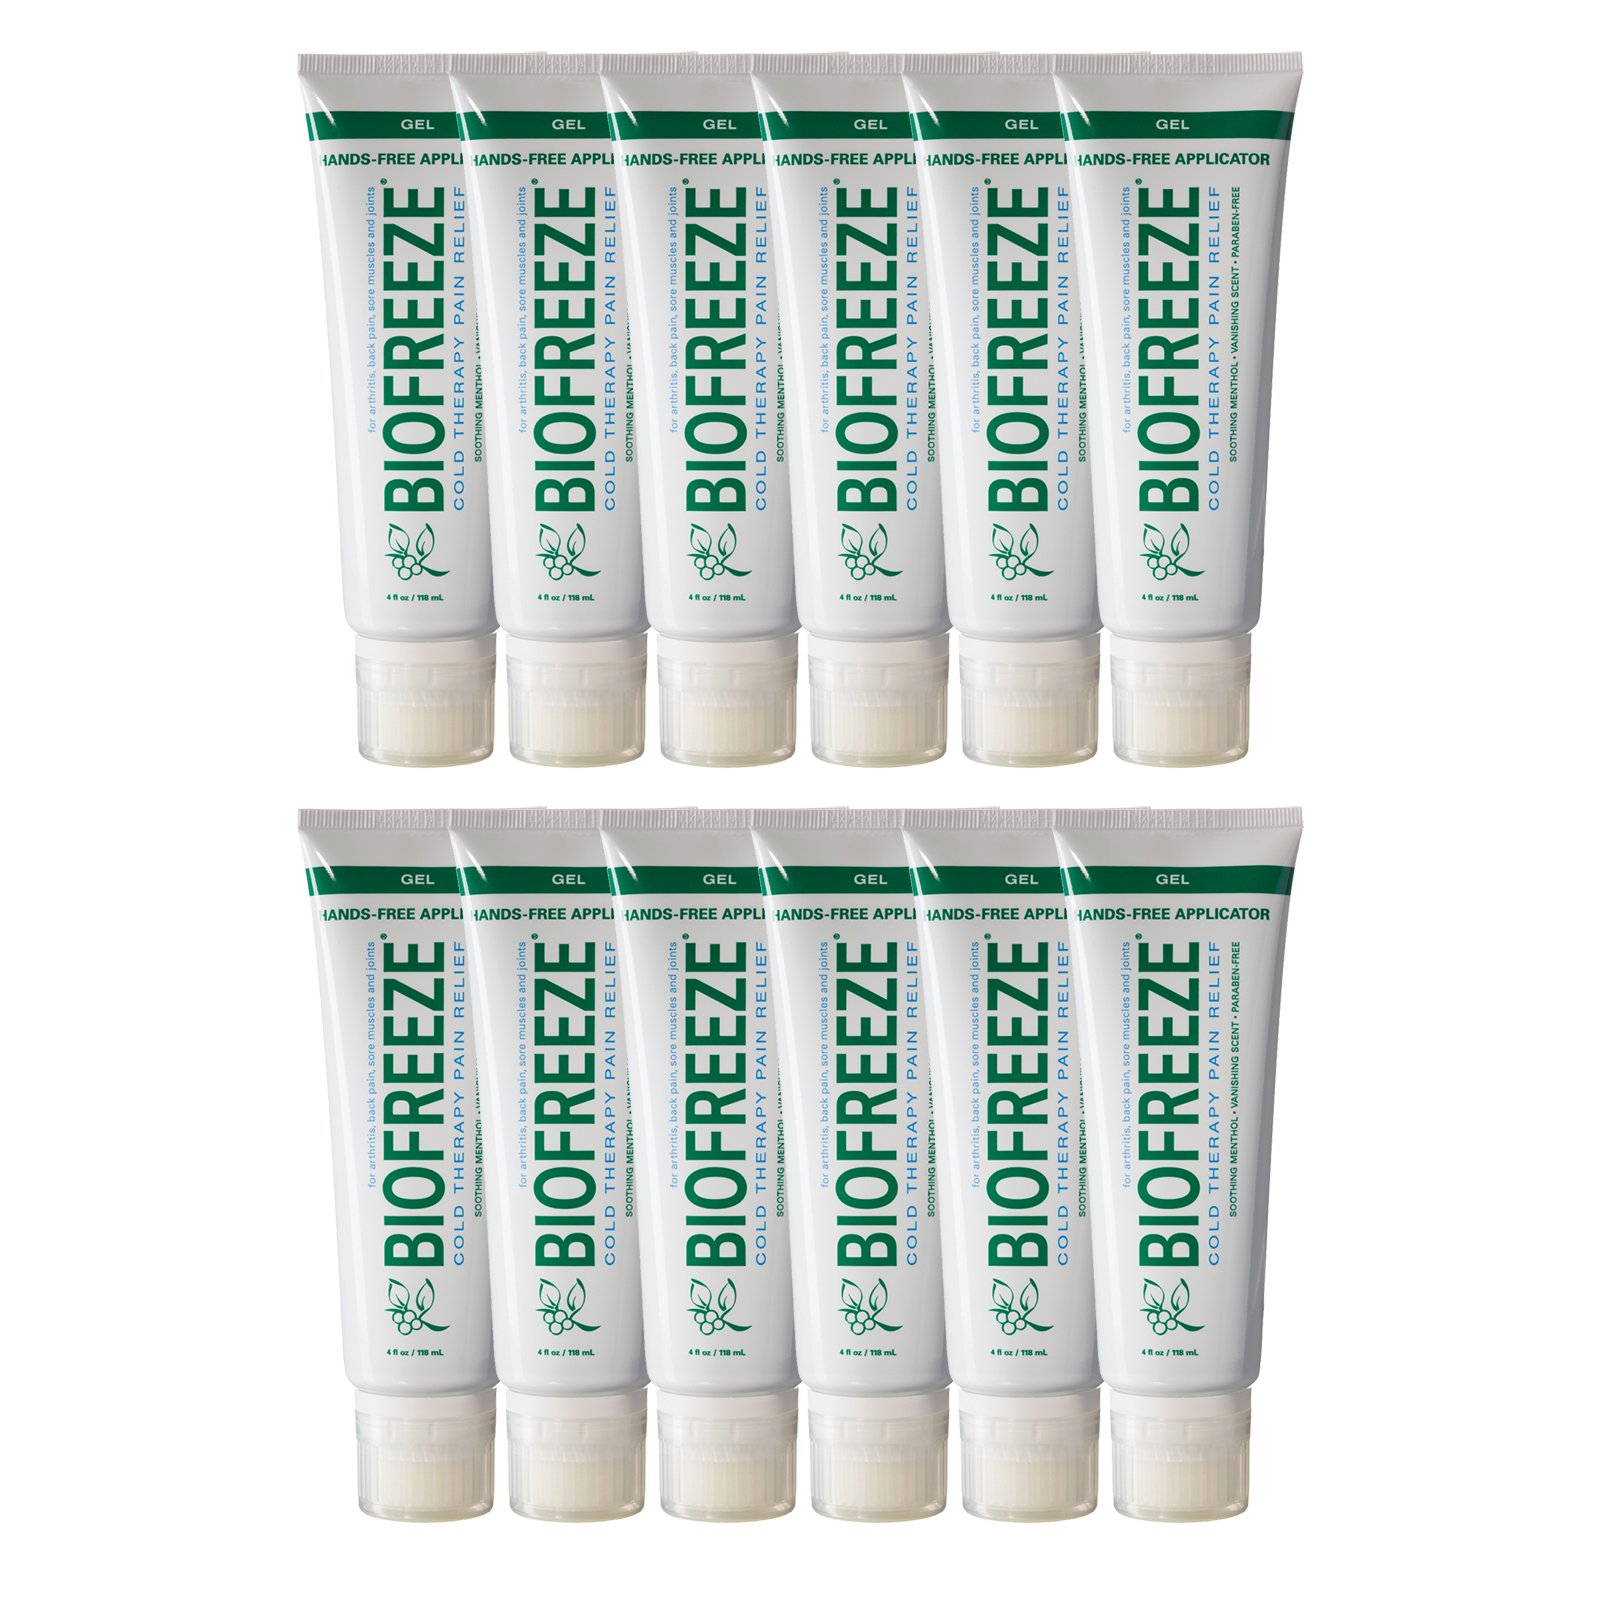 Biofreeze Pain Relief Gel for Arthritis, 4 oz. Tube with Hands-Free Applicator, Original Green Formula, Case of 12, 4% Menthol by Biofreeze